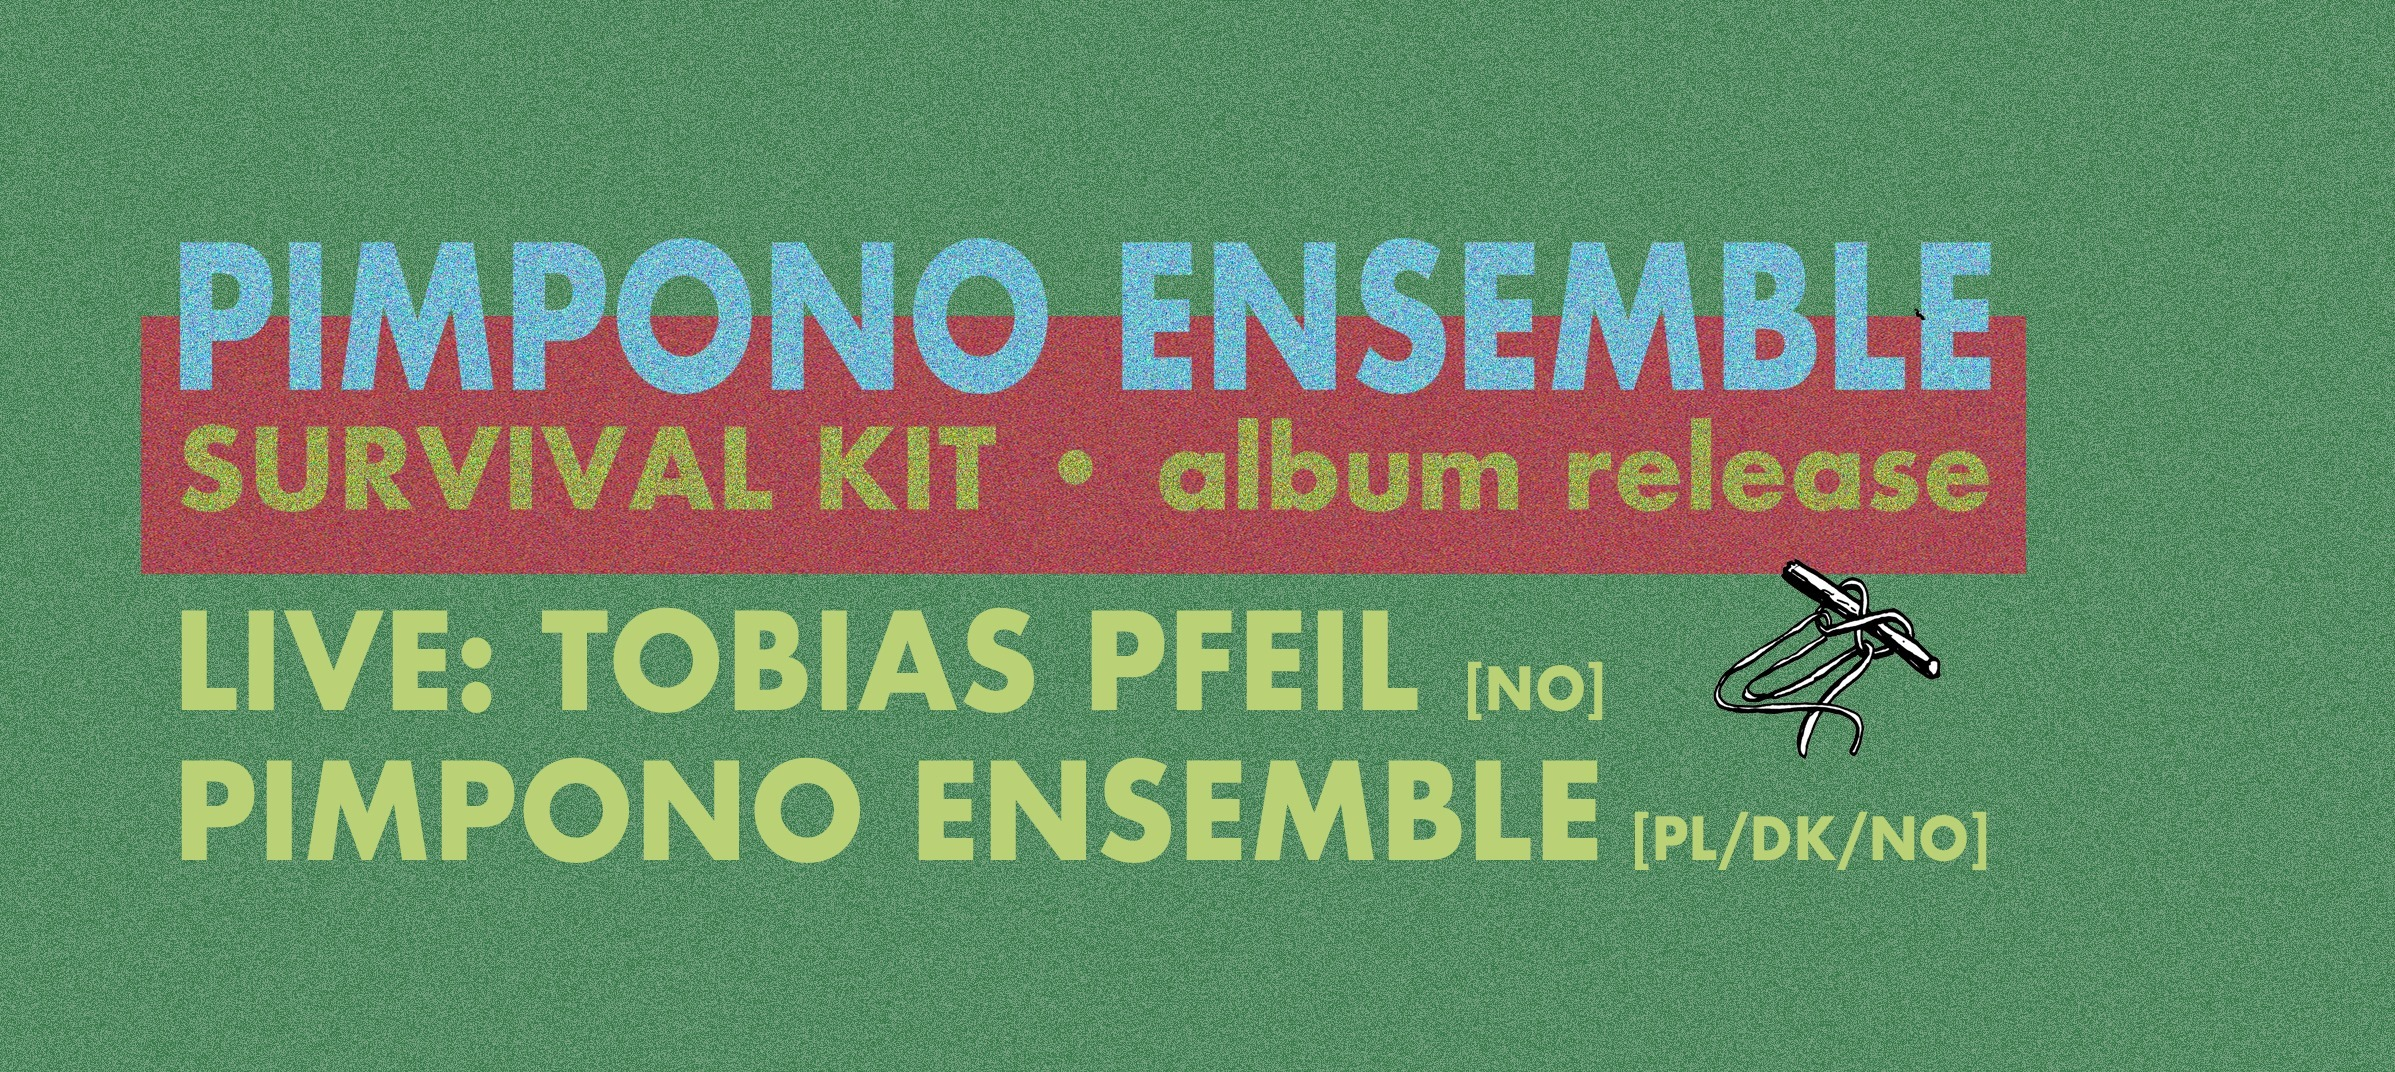 Pimpono Ensemble · 'Survival KIT' ¡ Album release !